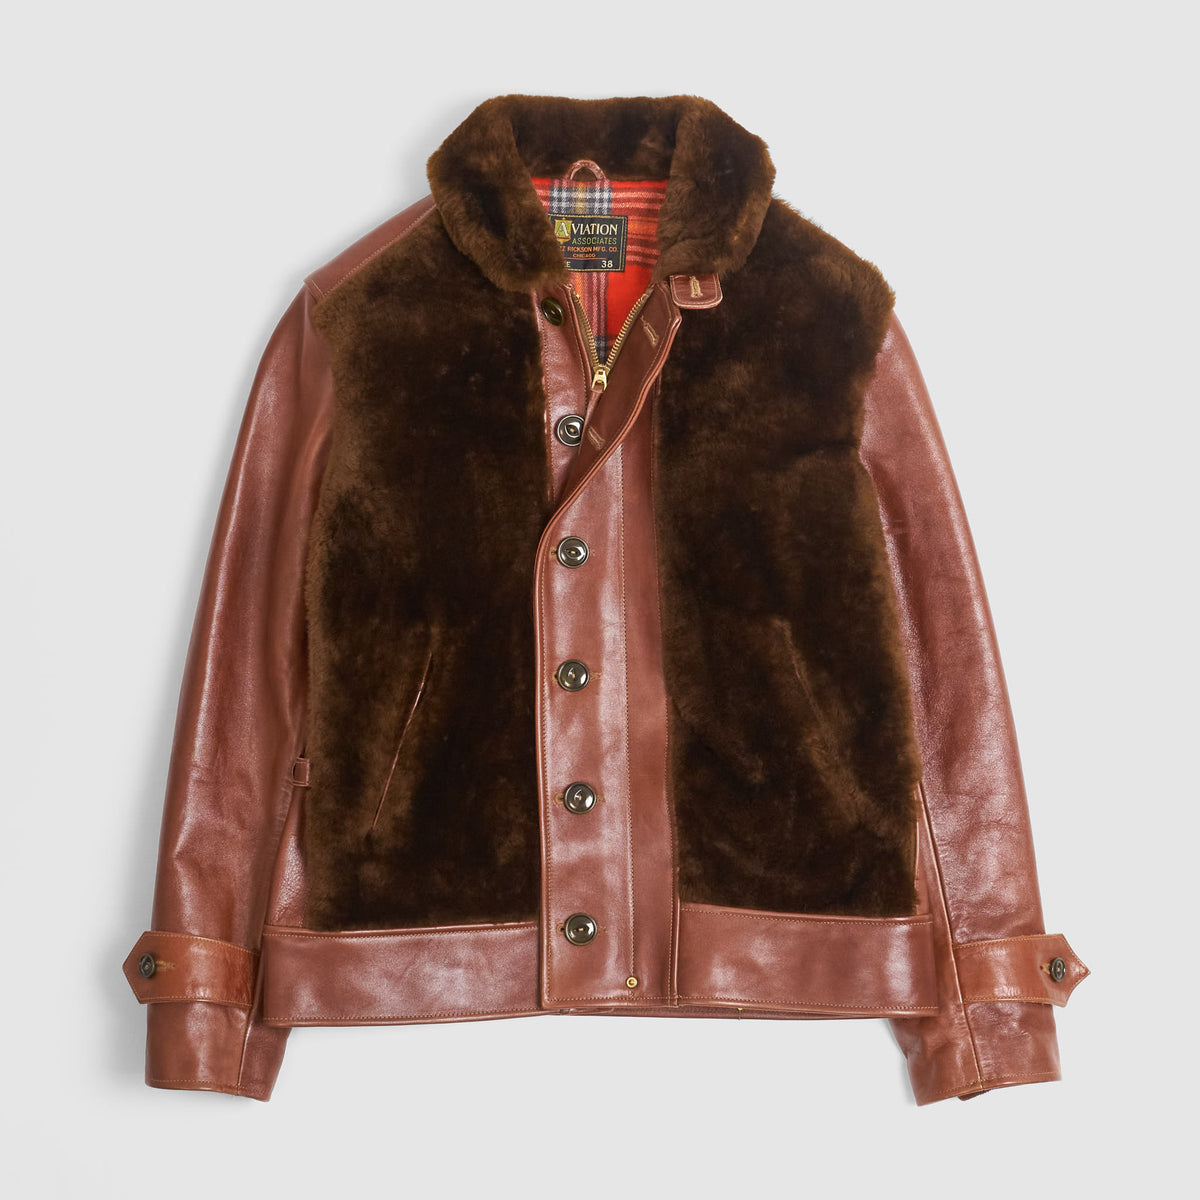 Buzz Rickson's Grizzly Jacket Type N-1